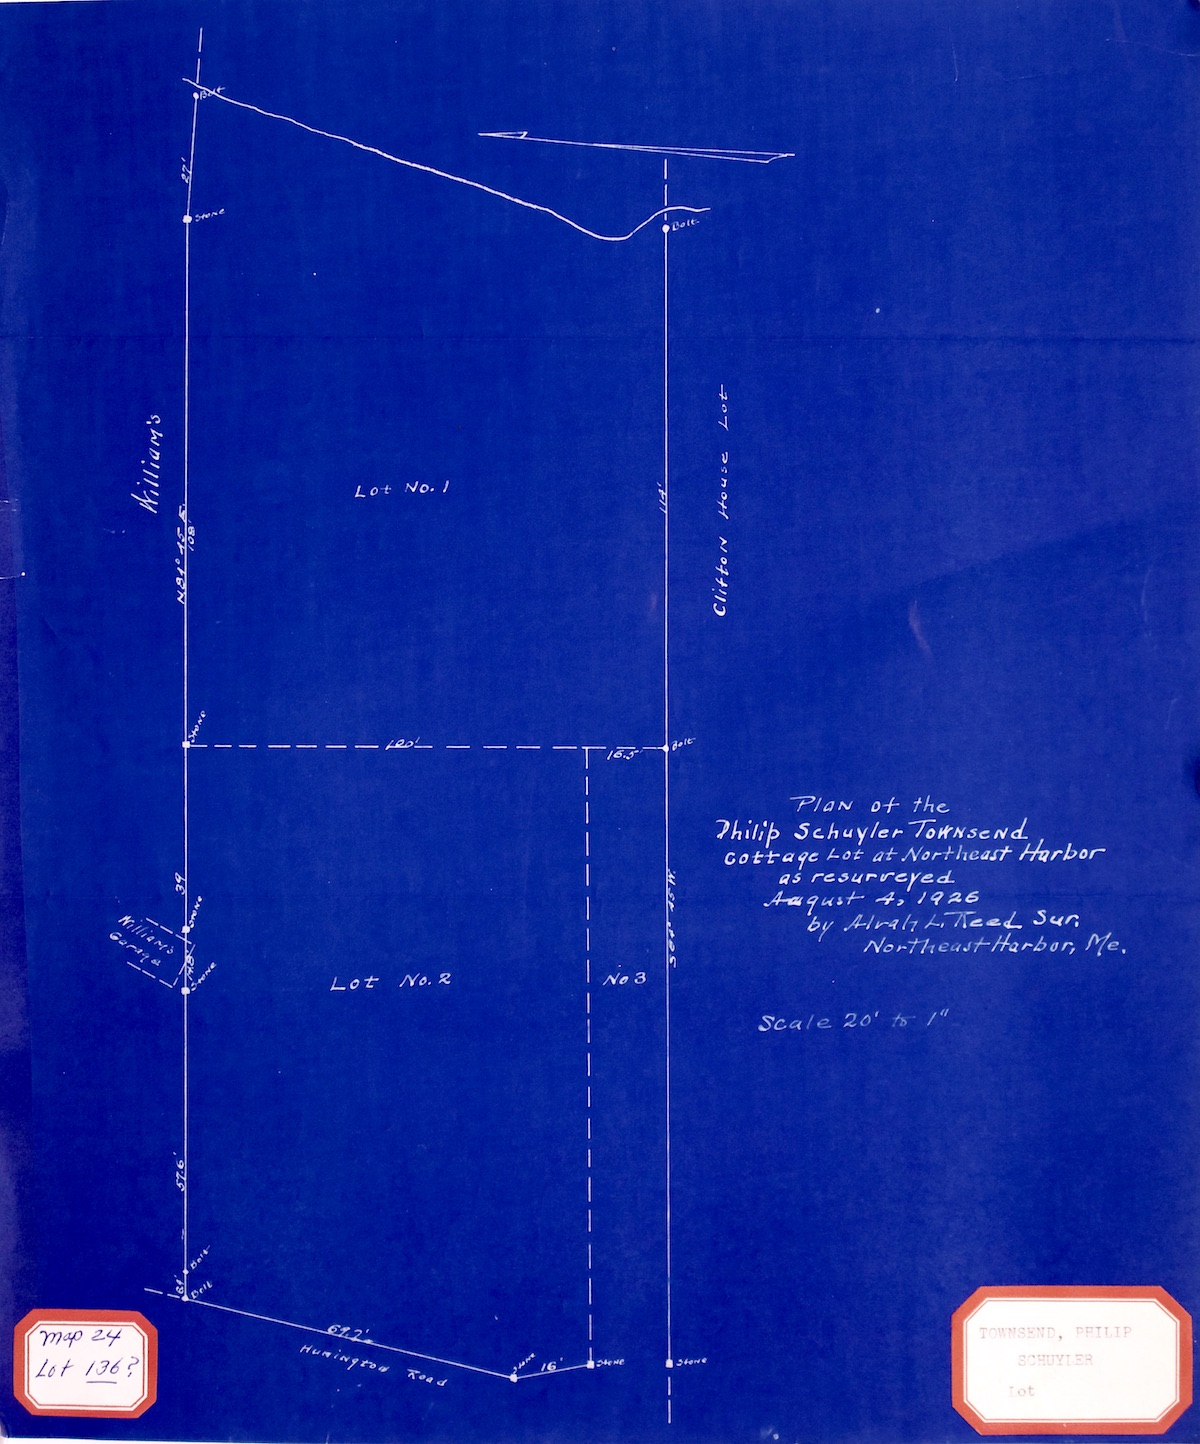 Plan of Philip Schuyler Townsend Lot